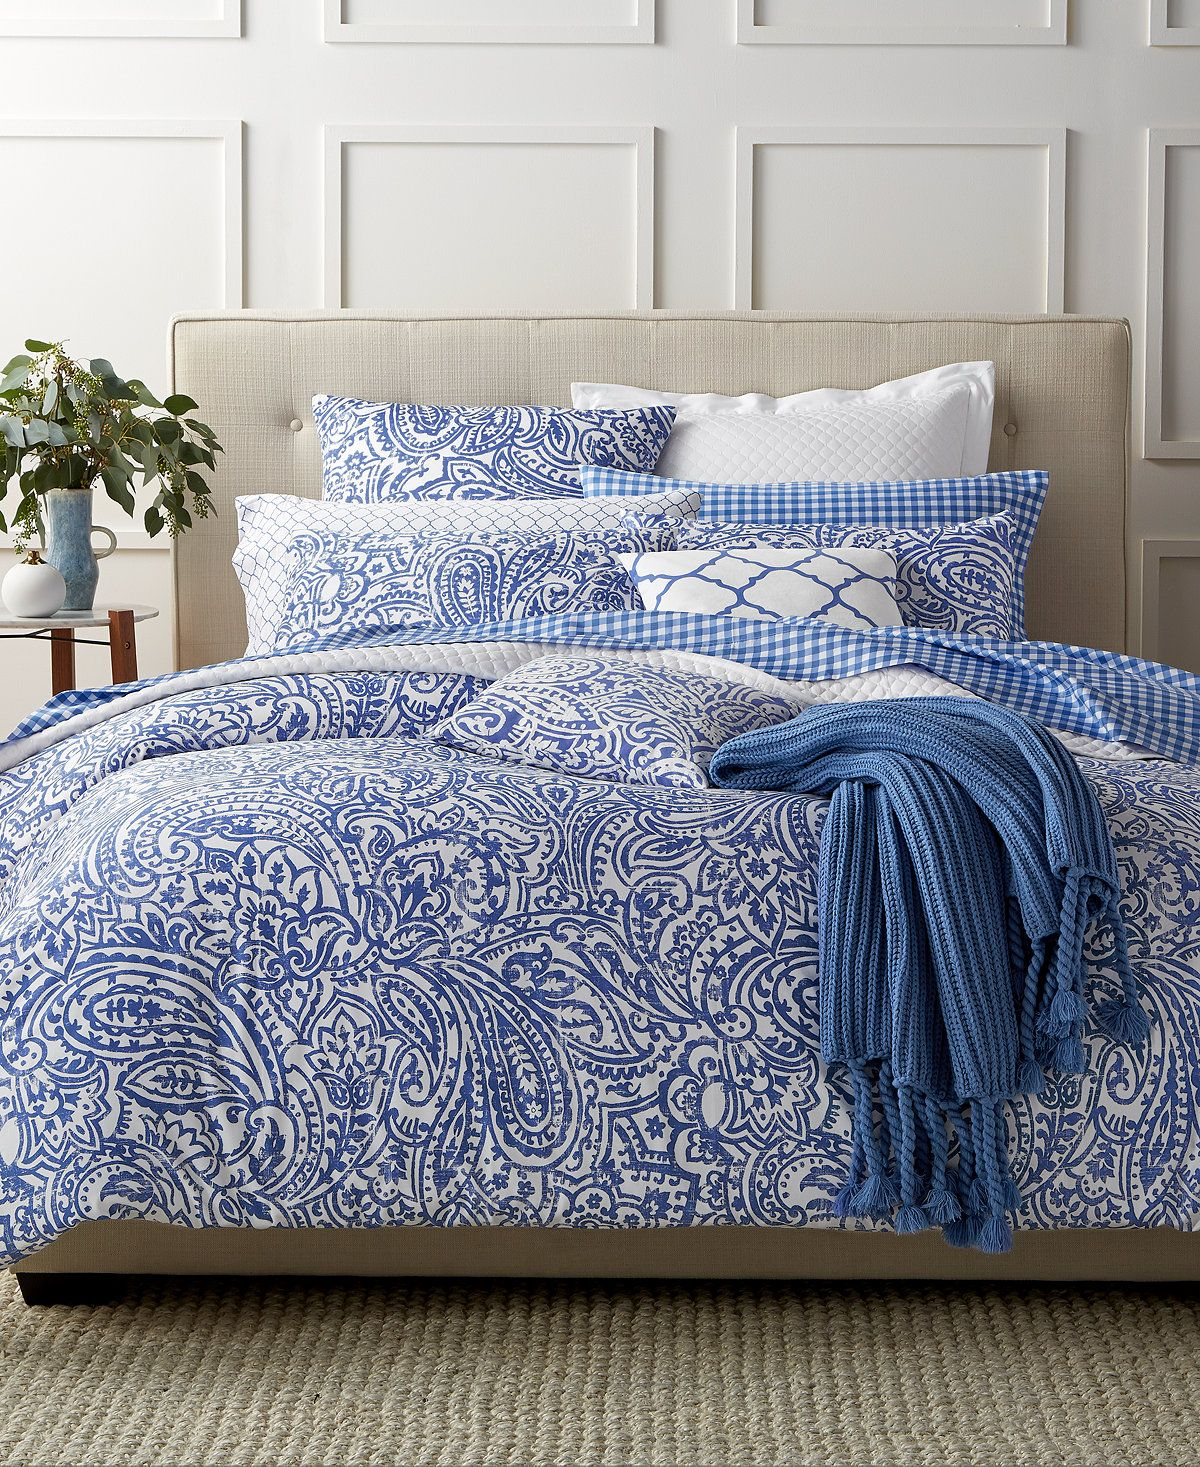 Charter Club Damask Designs Paisley Denim King Comforter